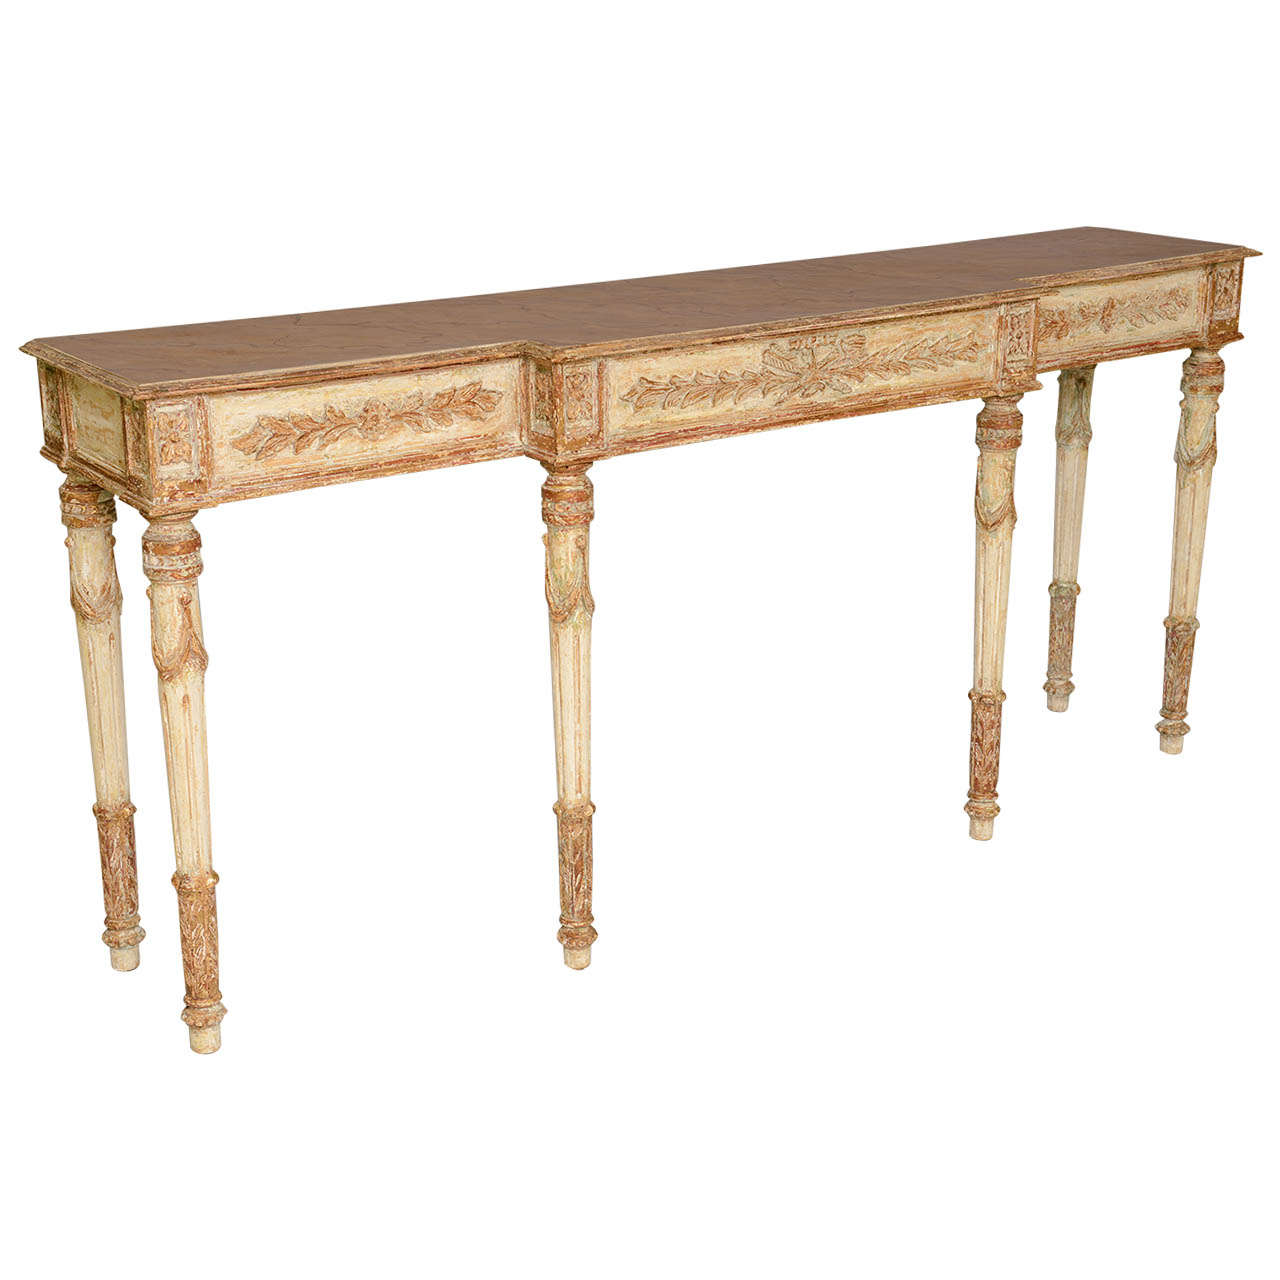 sofa table long narrow cleaning feather cushions and painted louis xvi style console at